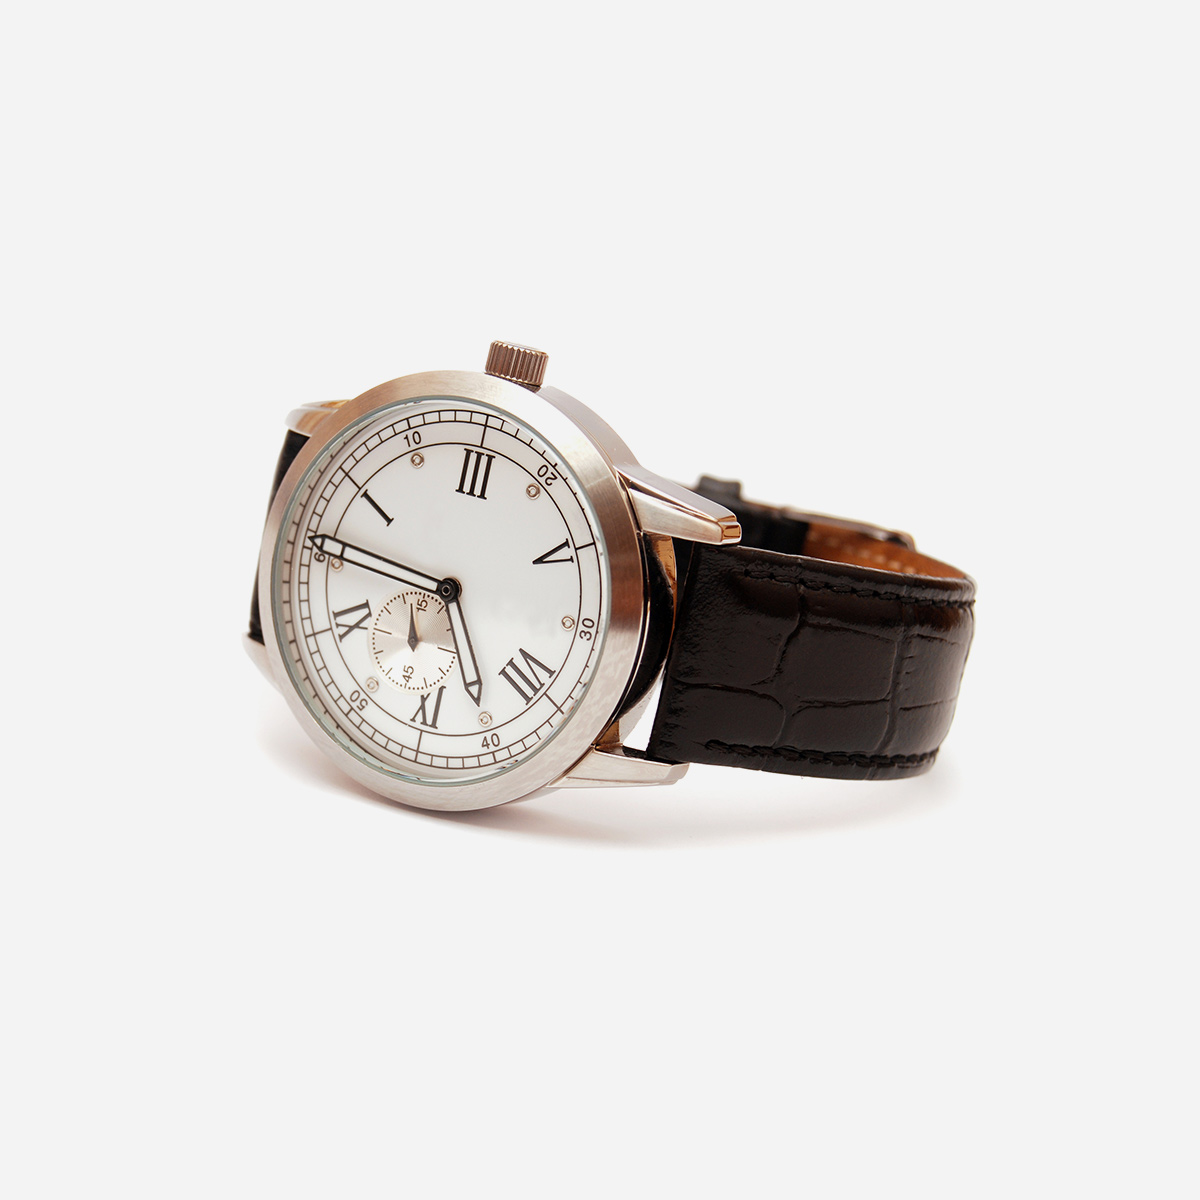 Mens-mechanical-watch-2